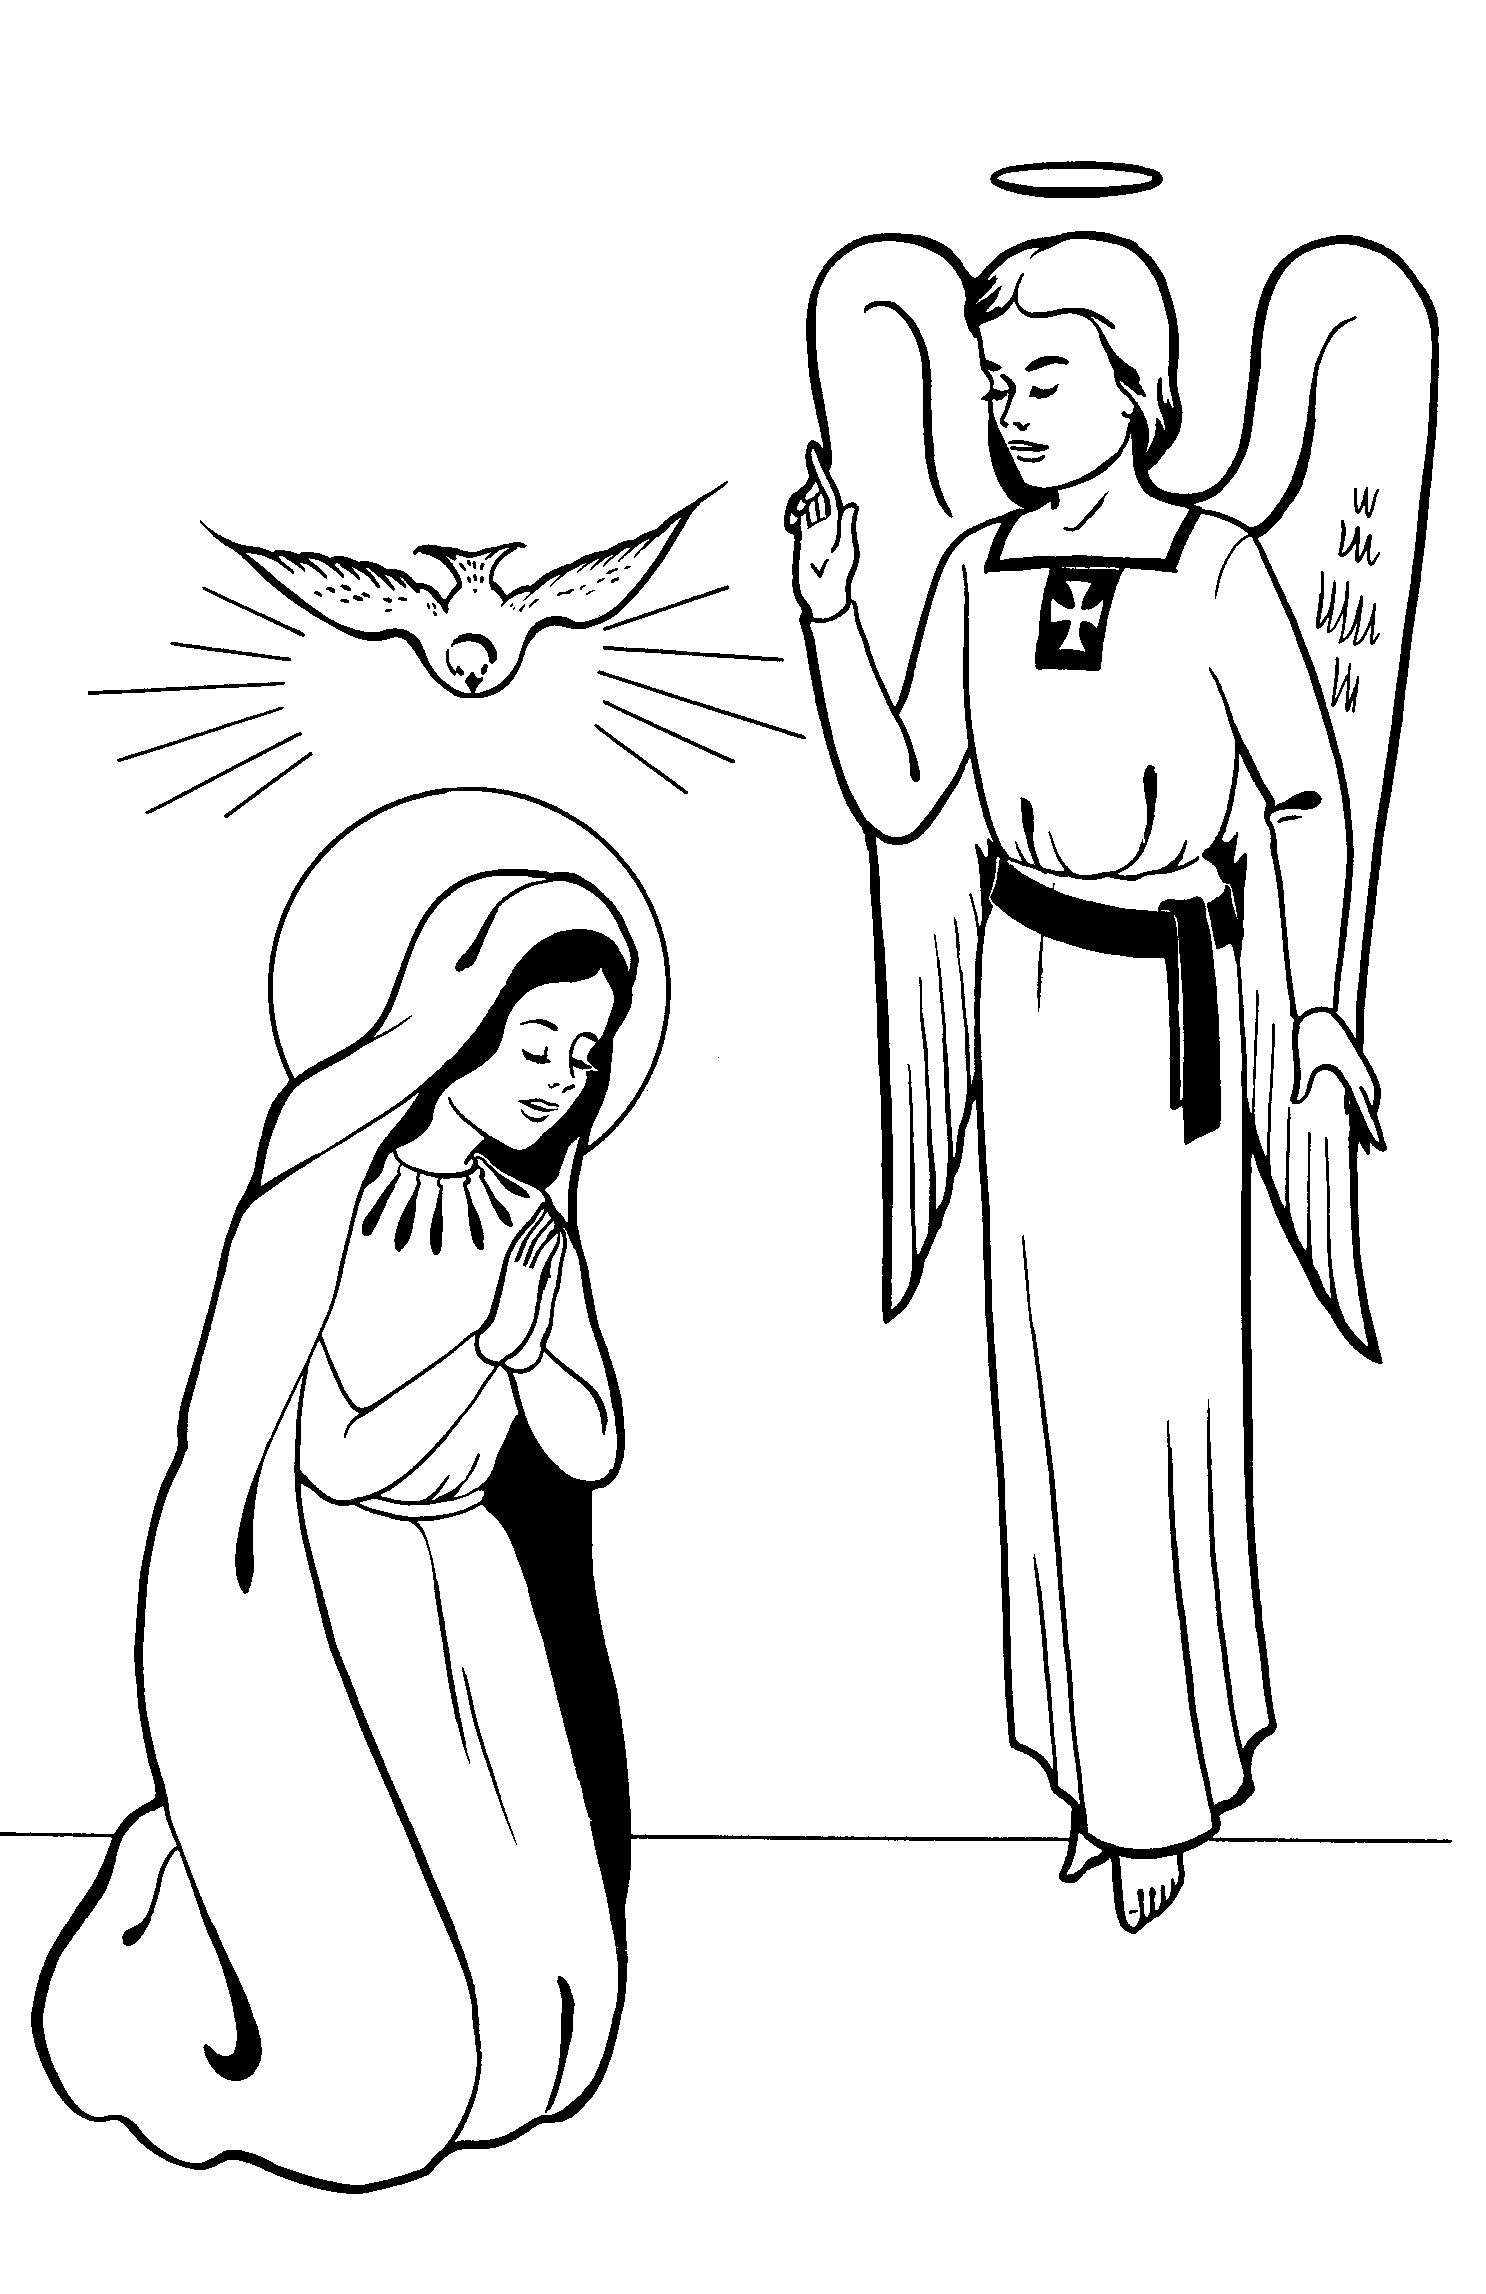 The annunciation clipart image stock Free Annunciation Cliparts, Download Free Clip Art, Free ... image stock